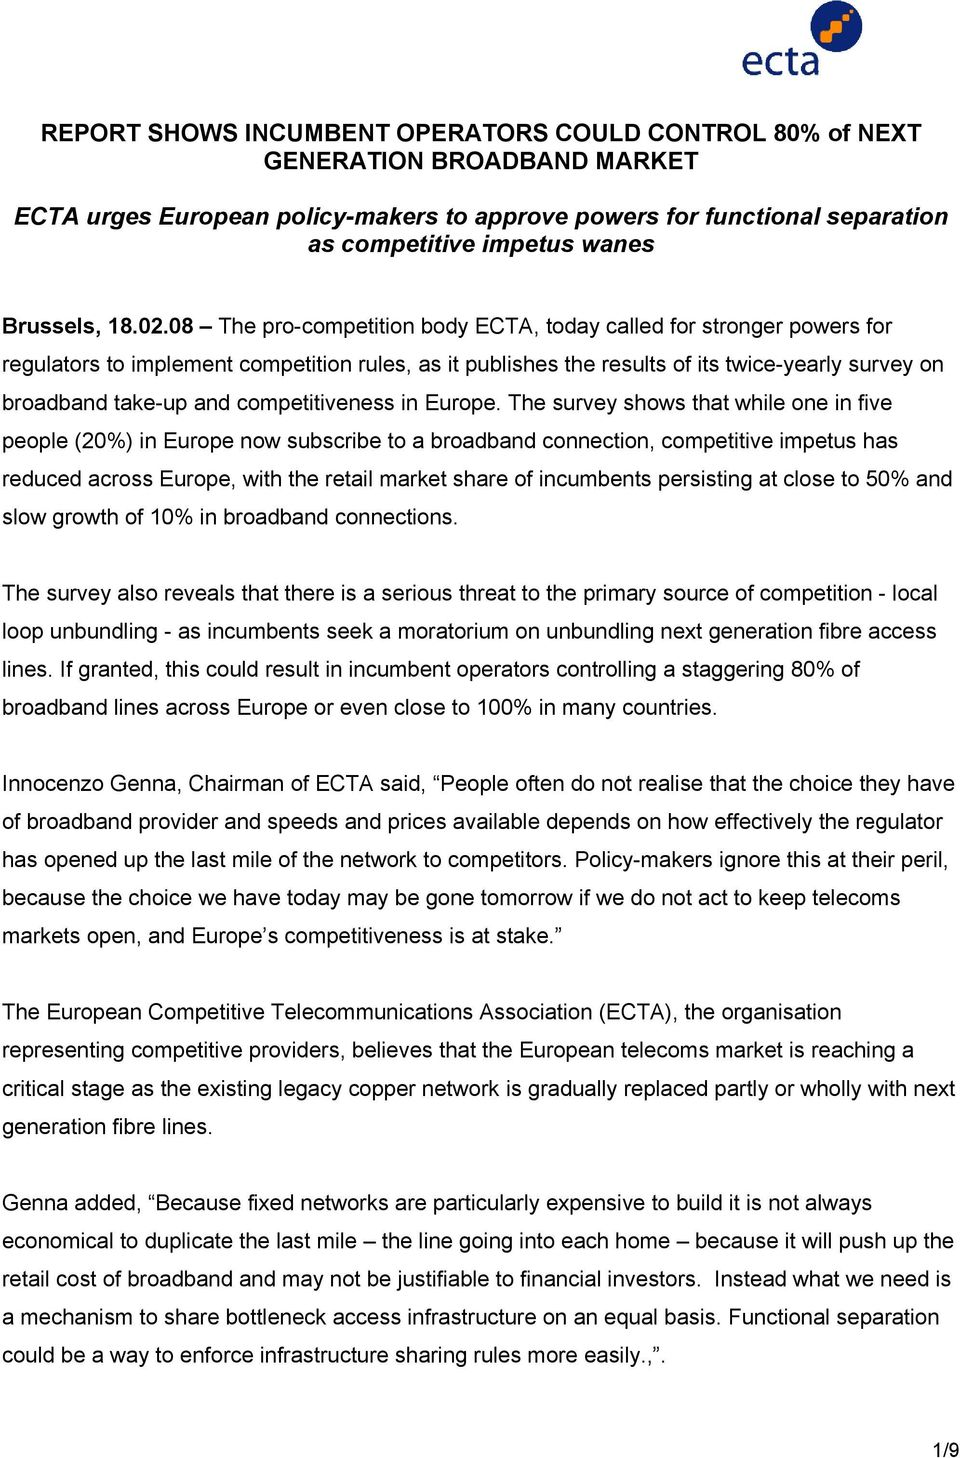 08 The pro-competition body ECTA, today called for stronger powers for regulators to implement competition rules, as it publishes the results of its twice-yearly survey on broadband take-up and